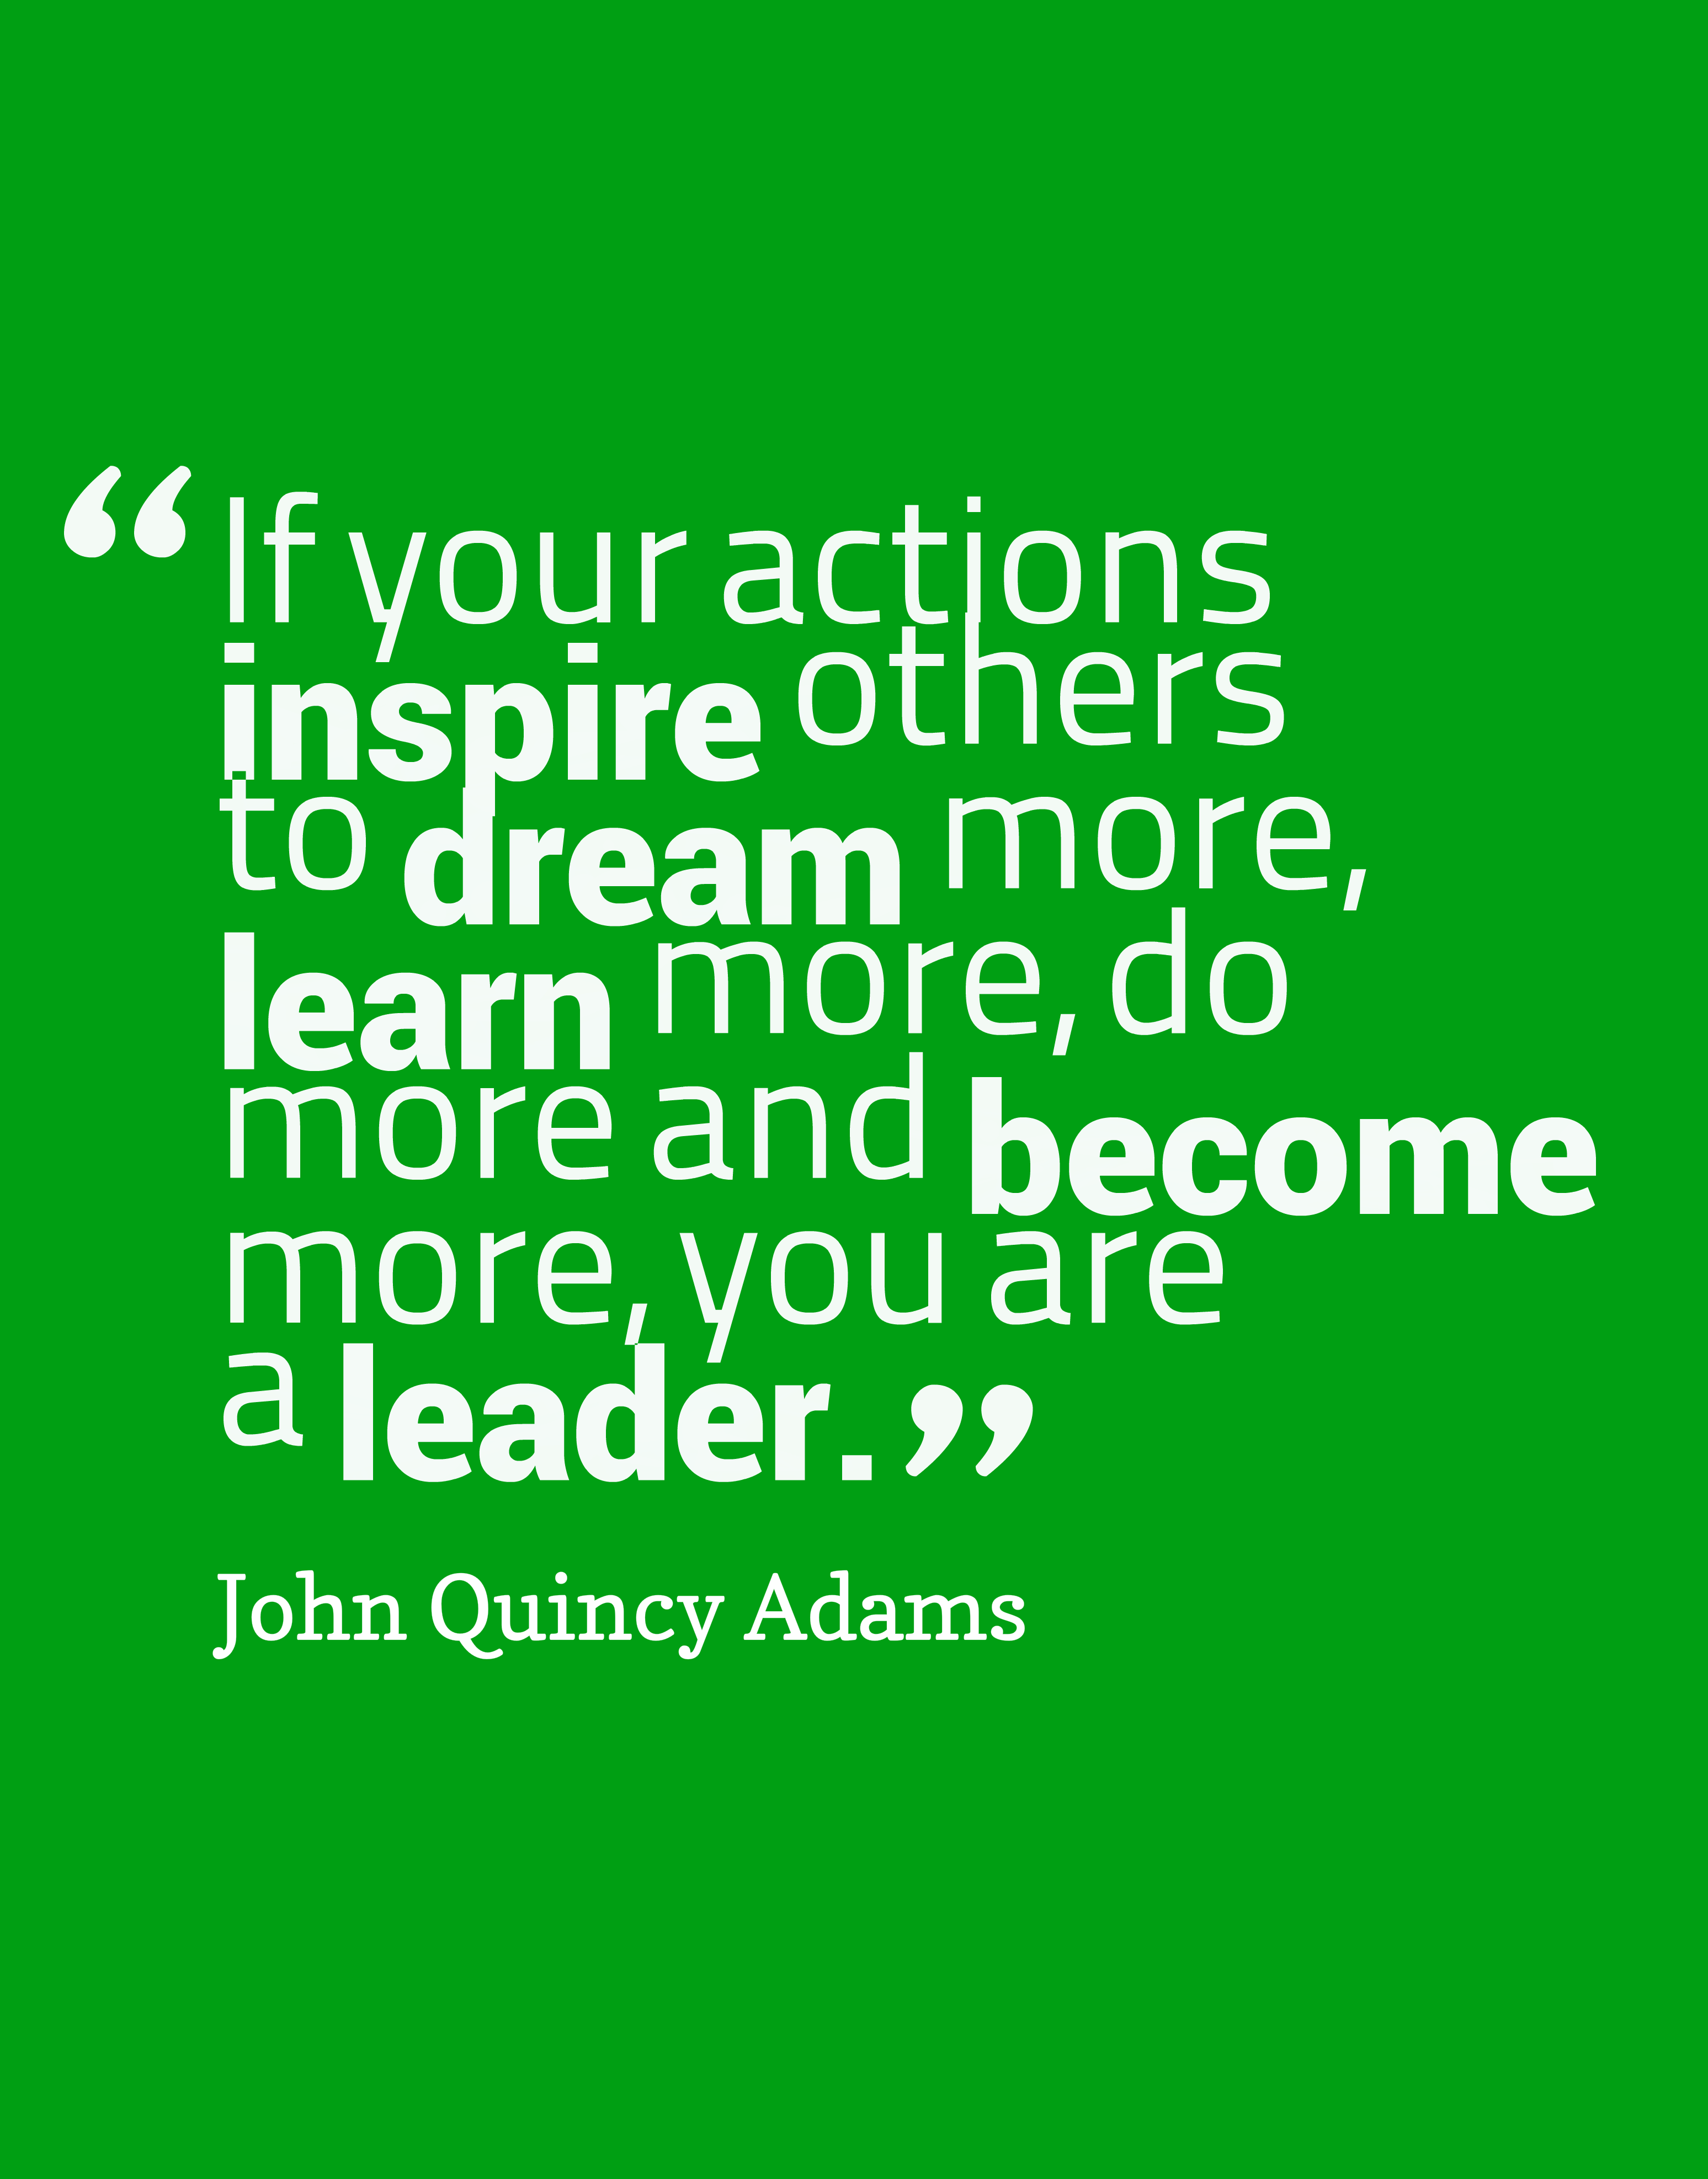 if-your-actions-inspire-others__quotes-by-john-quincy-adams-53